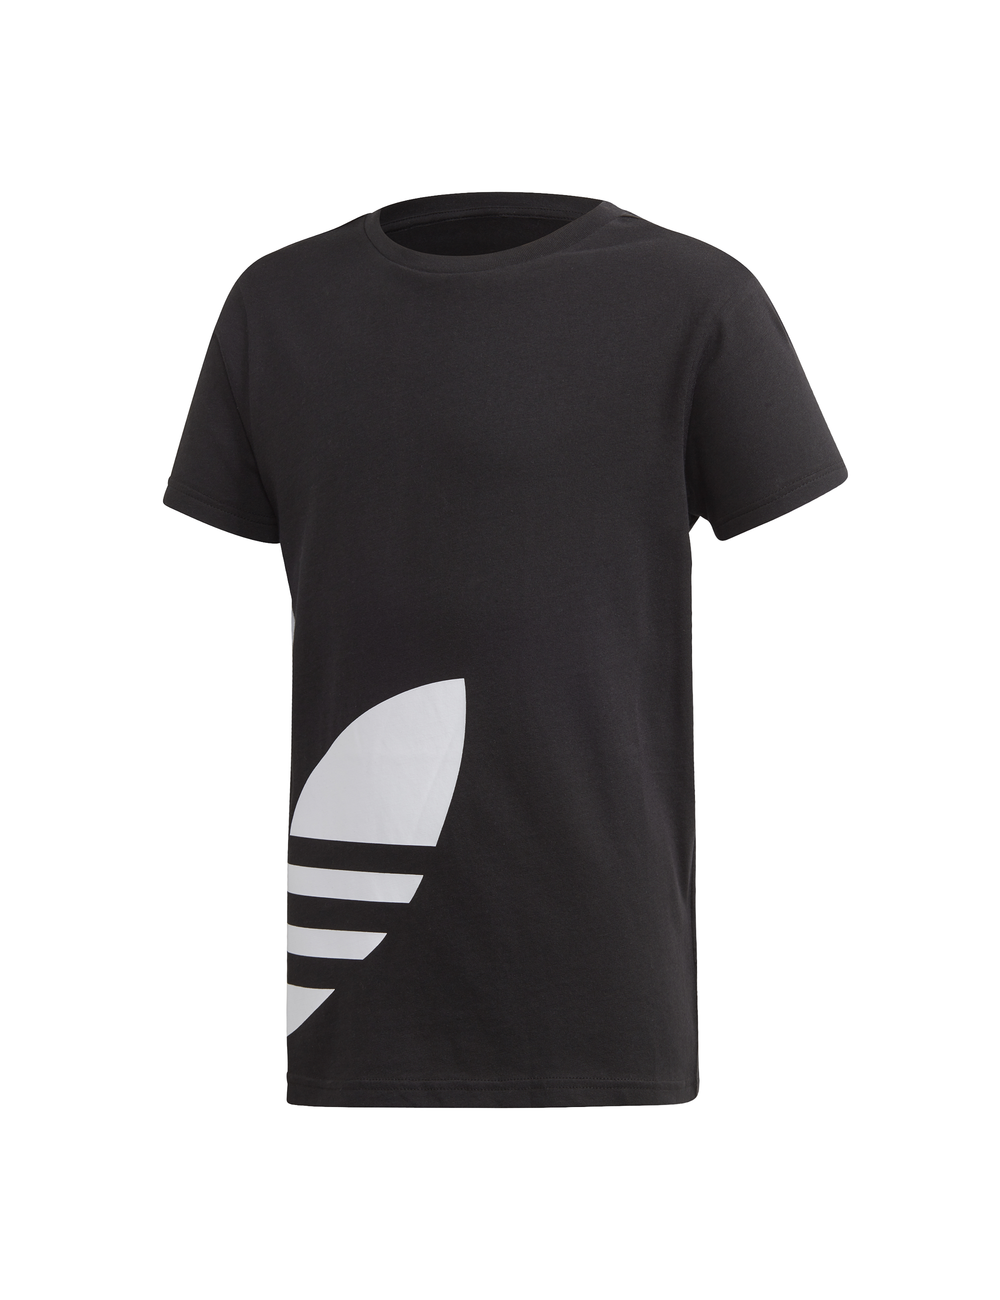 T-shirt Adidas FM5641 BLACK/WHITE  -19